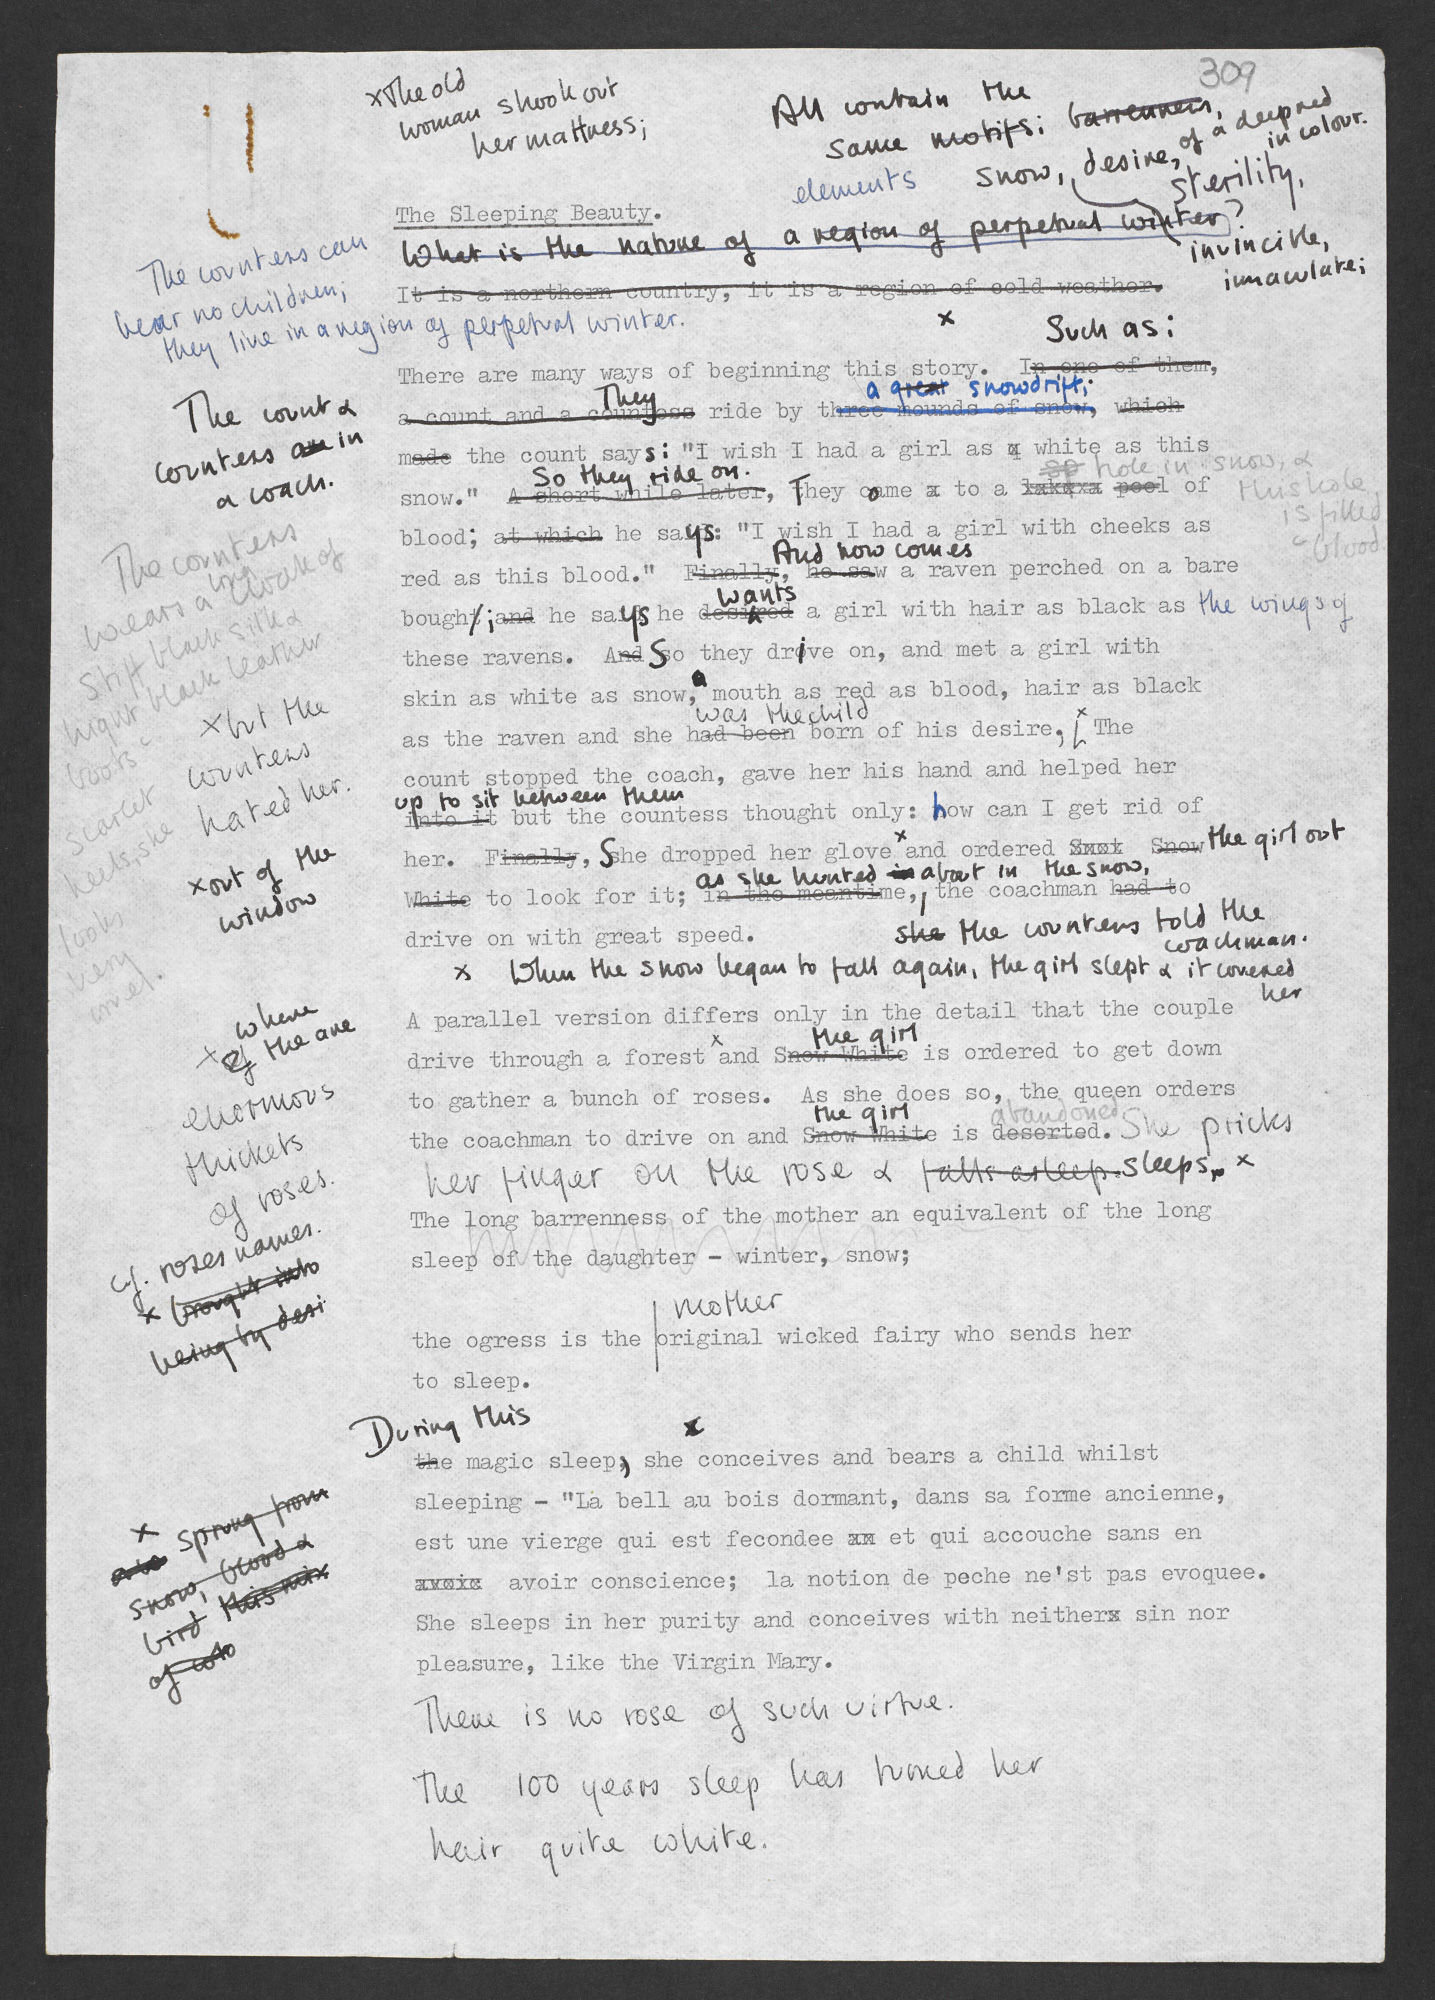 Manuscript notes and drafts of stories from The Bloody Chamber by Angela Carter